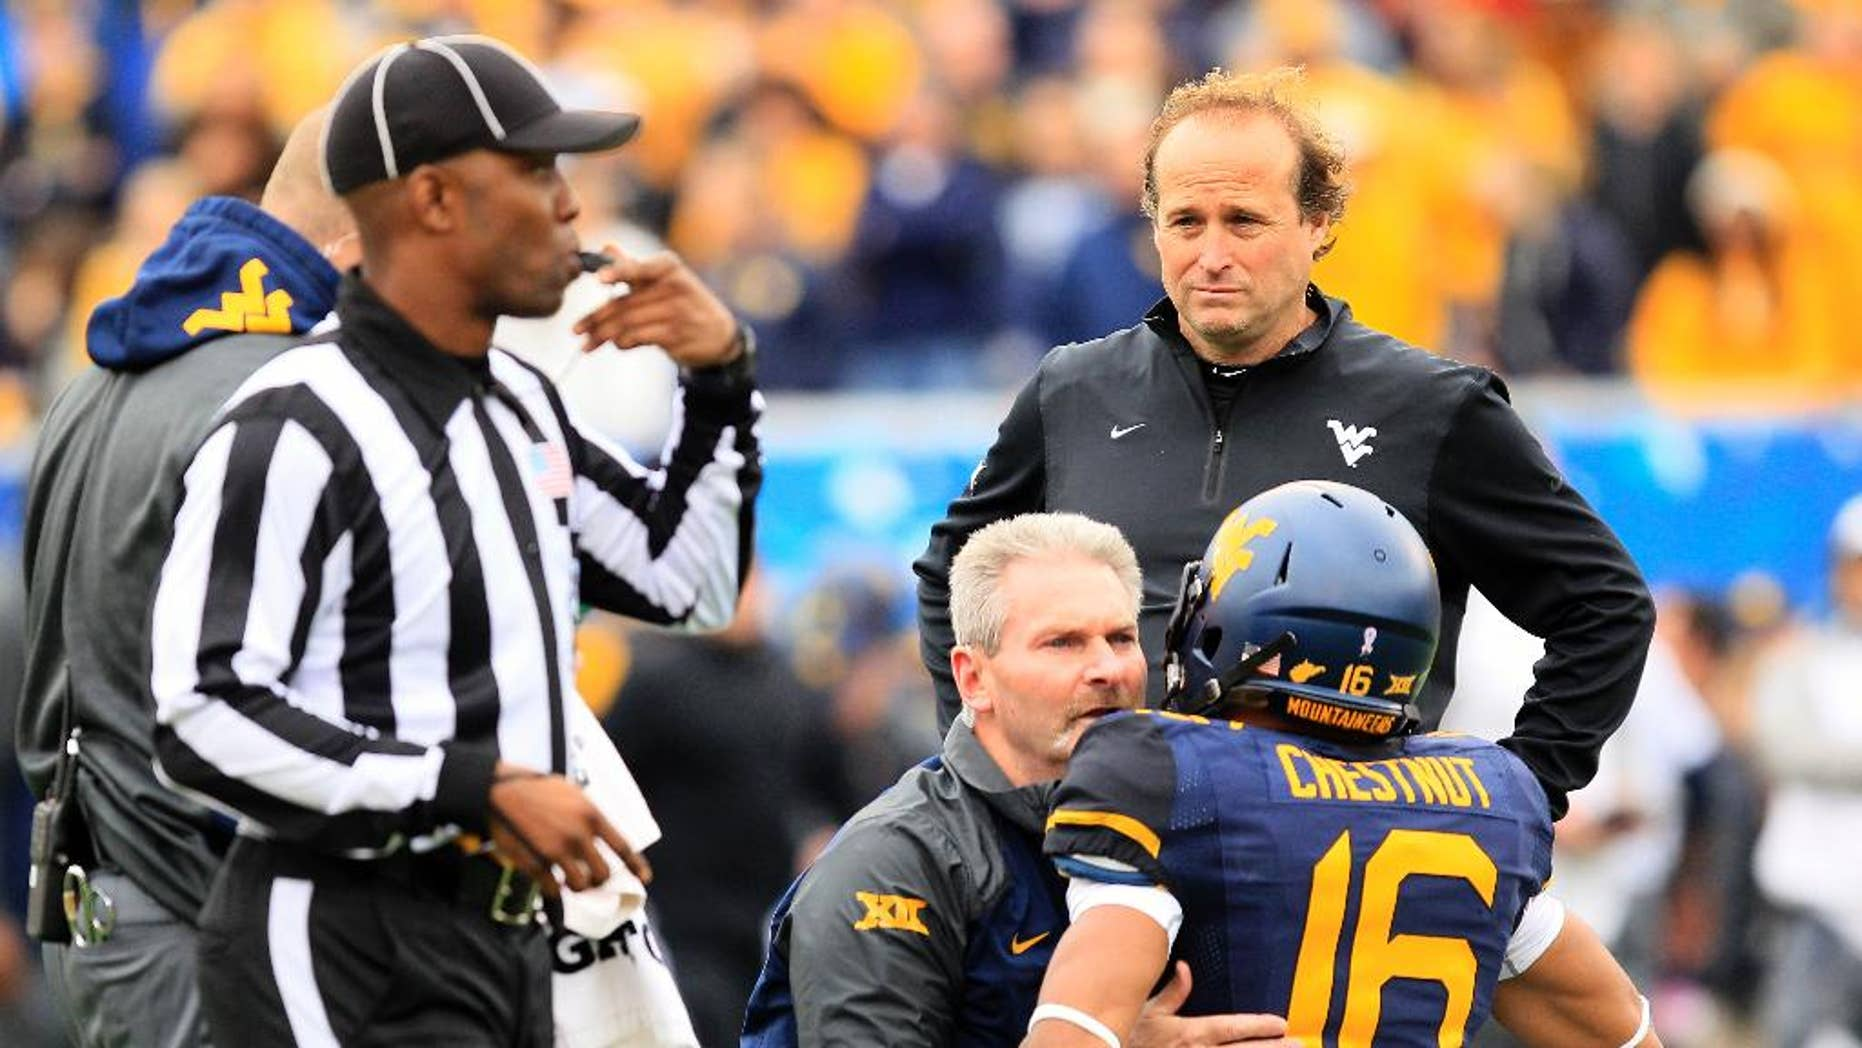 West Virginia coach Dana Holgorsen looks on as Terrell Chestnut (16) is looked over by the medical staff during the second half of an NCAA college football game against Baylor in Morgantown, W.Va., Saturday, Oct. 18, 2014. West Virginia won 41-27. Chestnut left the game with a concussion. (AP Photo/Chris Jackson)